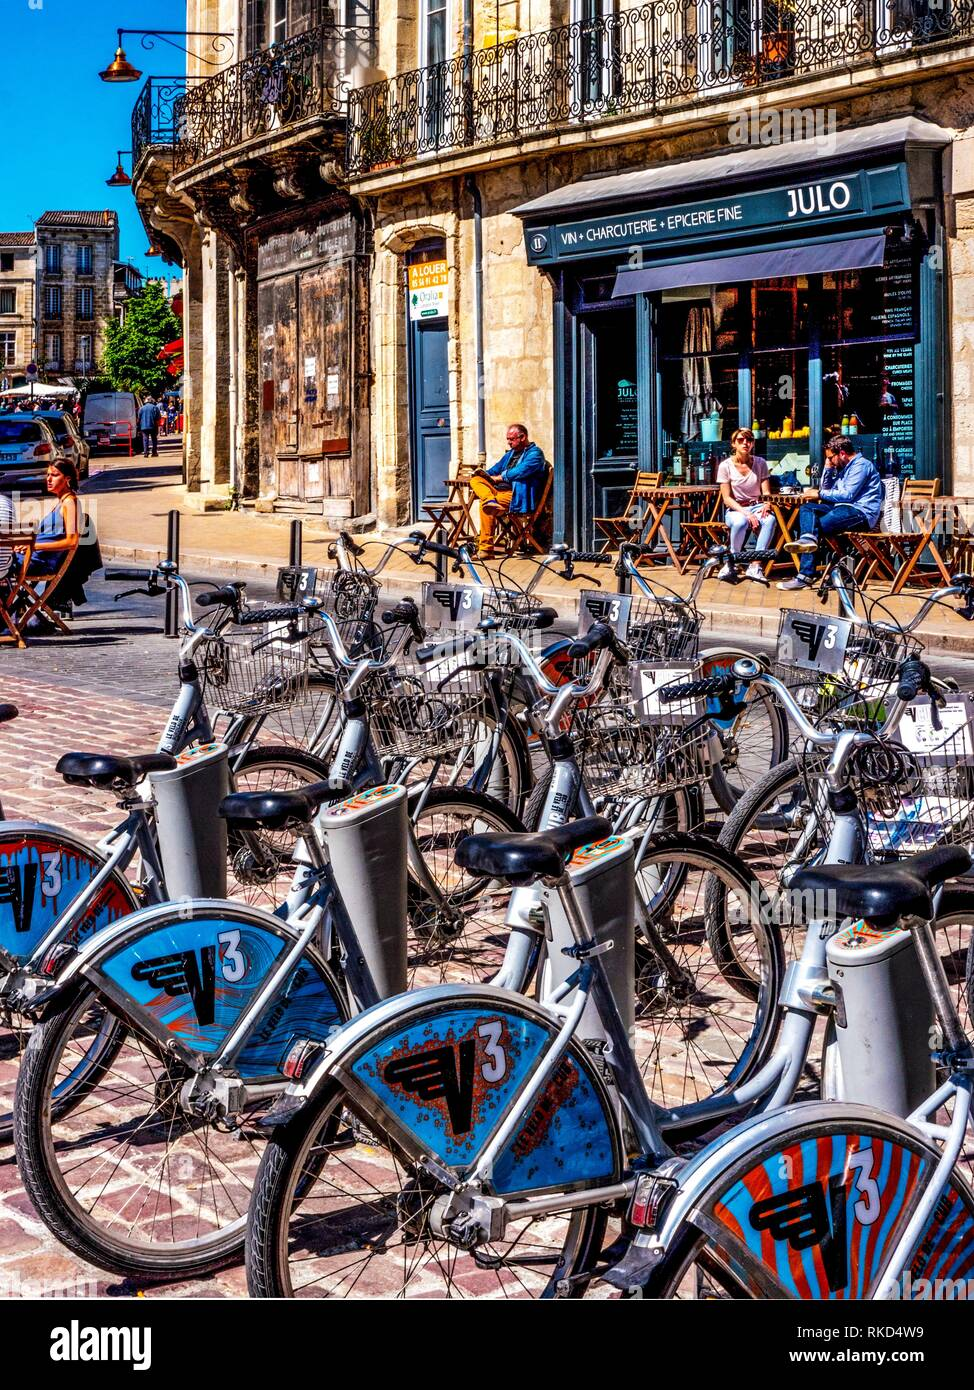 France, Nouvelle Aquitaine, Gironde. Place Saint Michel, at Bordeaux, with a parking of ''V3'' (free use bicycles). - Stock Image